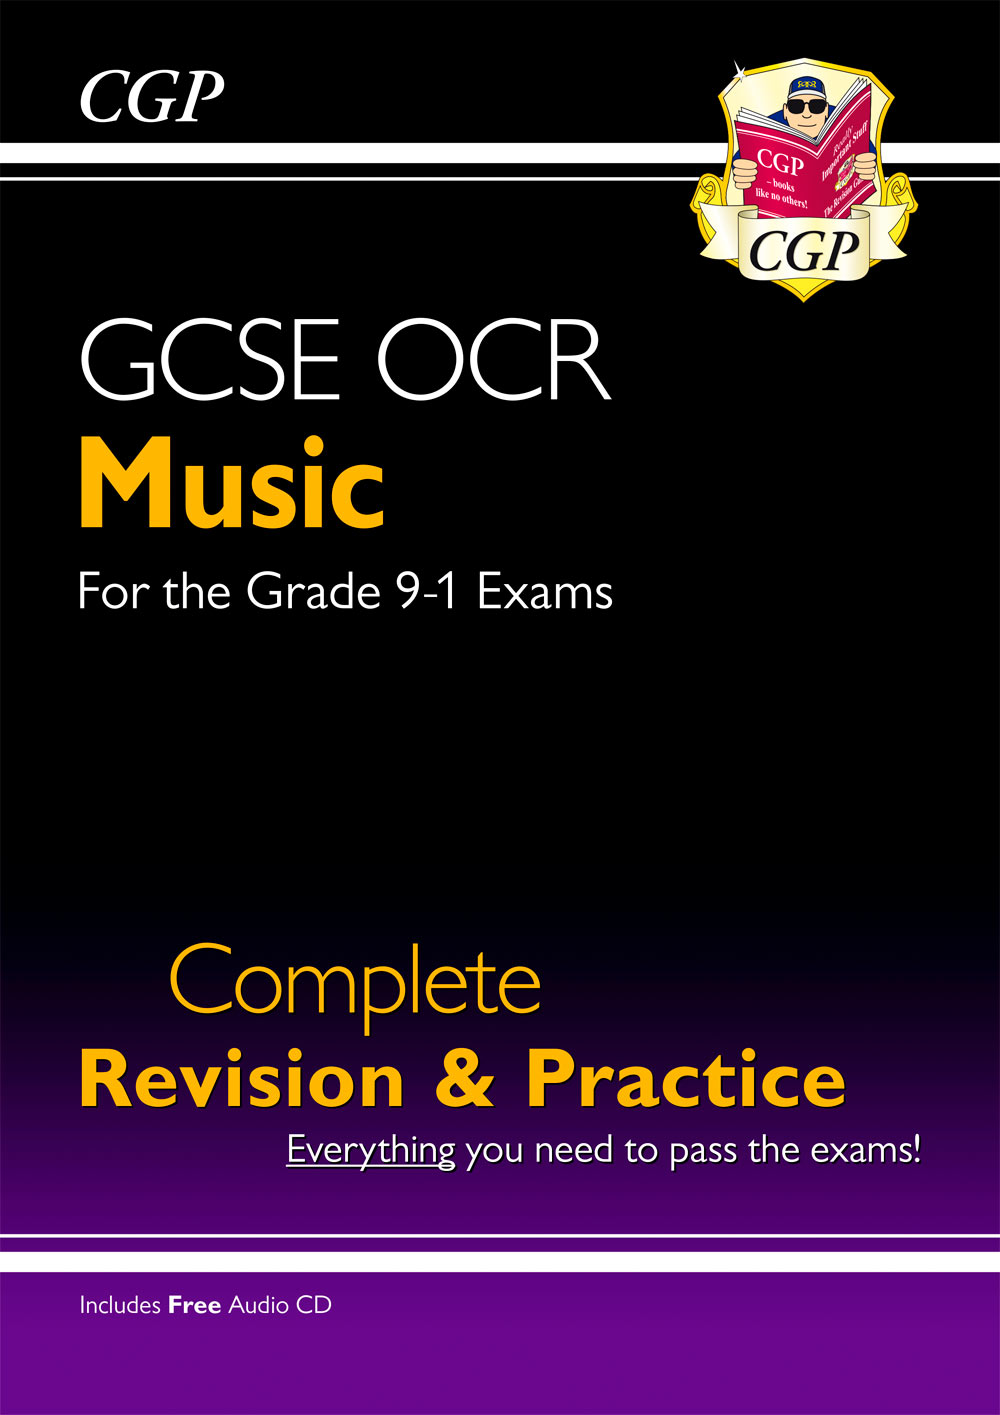 MURS41 - New GCSE Music OCR Complete Revision & Practice (with Audio CD) - for the Grade 9-1 Course